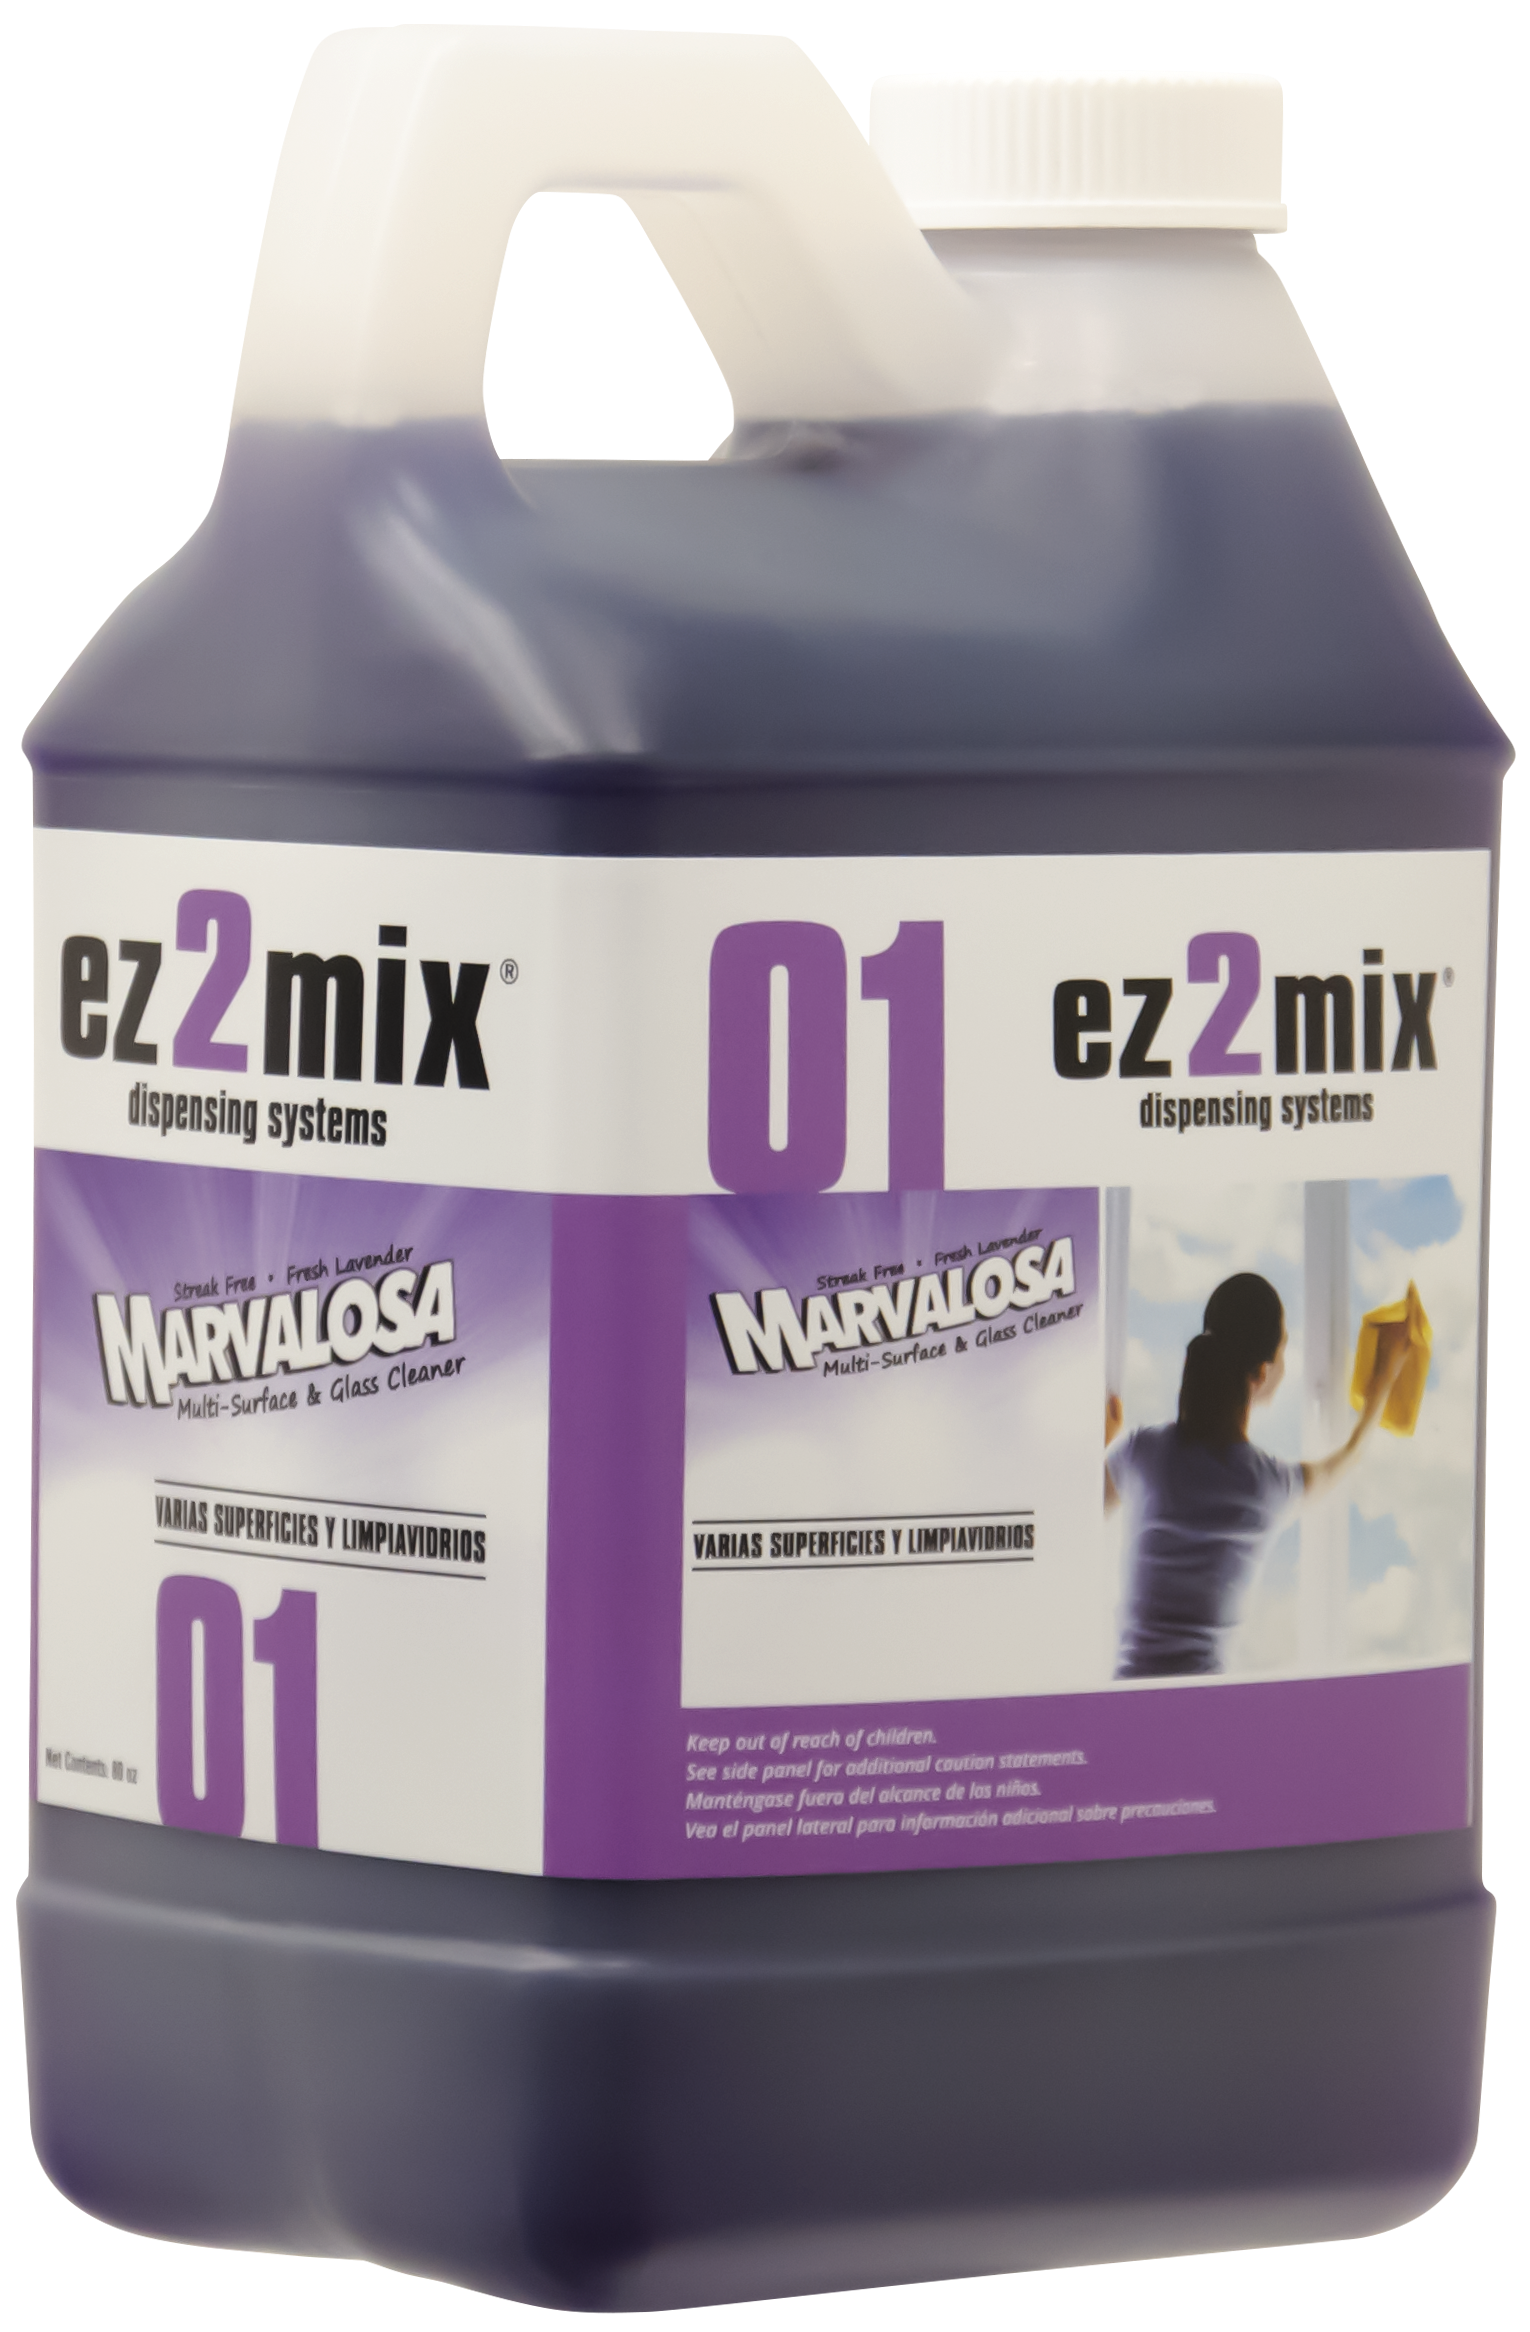 Nyco EZ001-480 multi-surface & glass cleaner